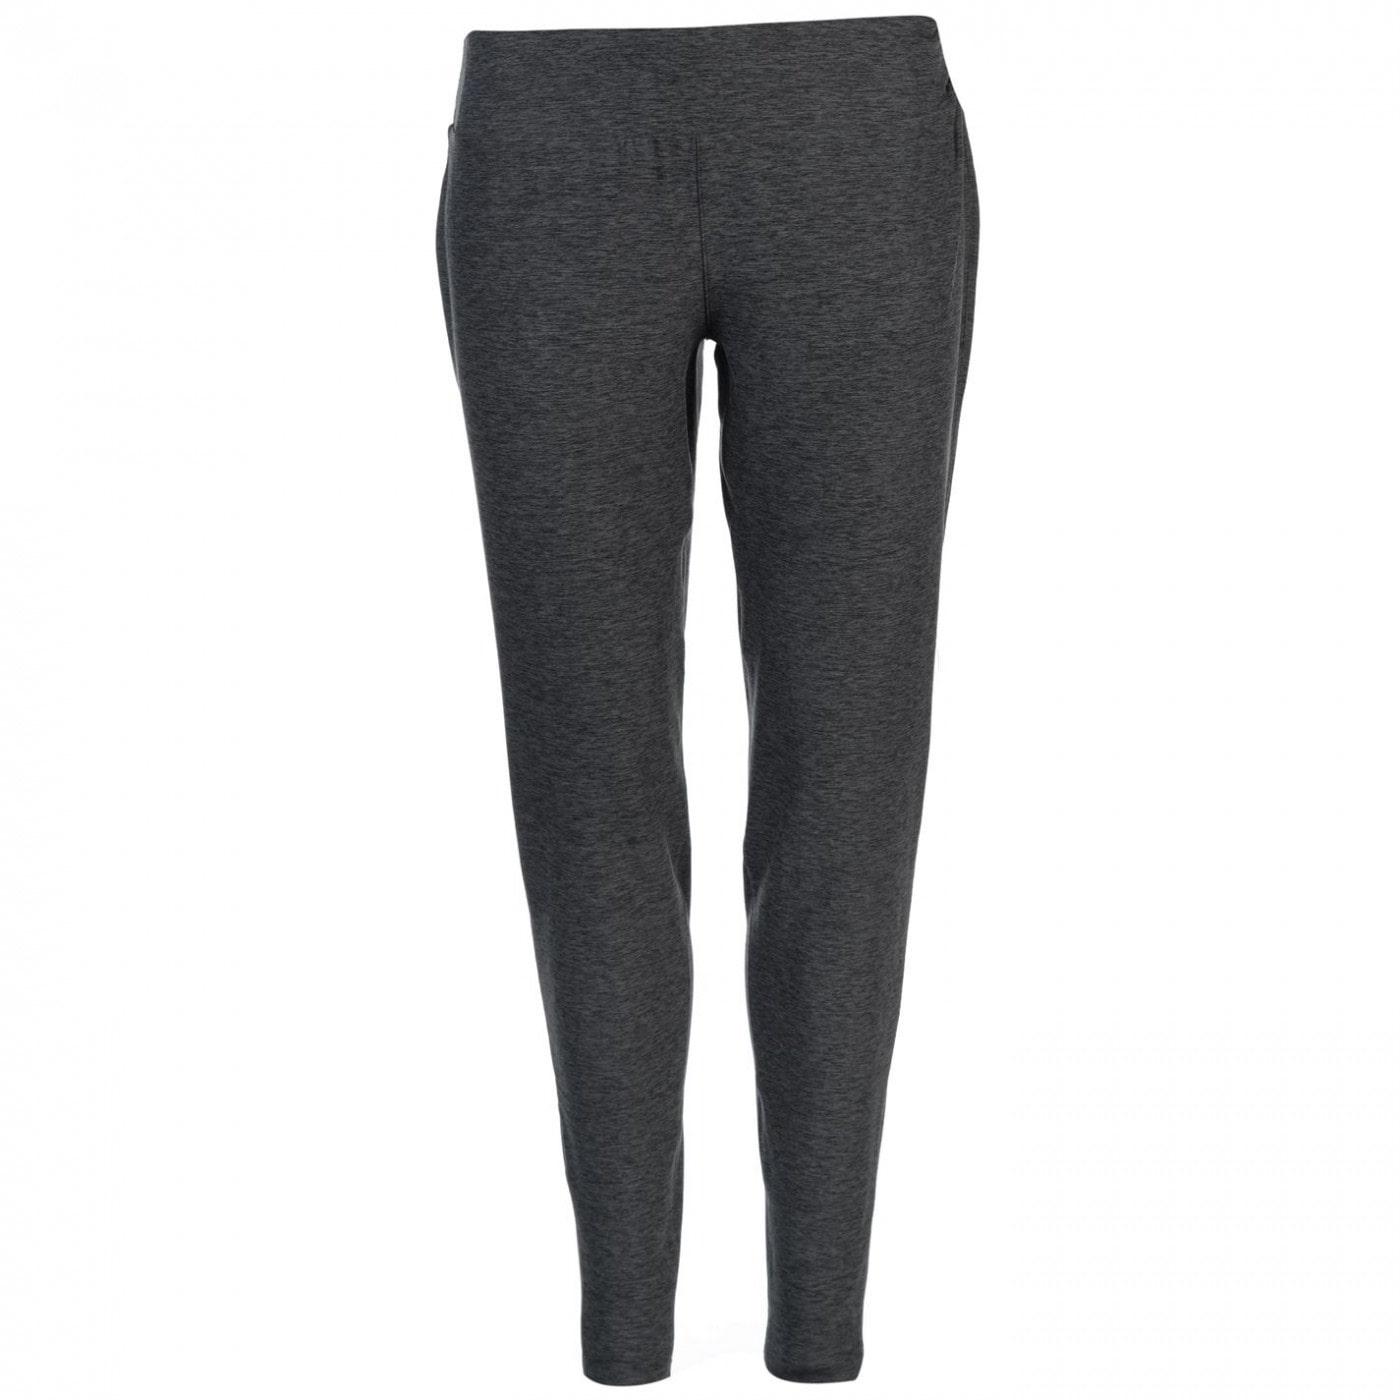 New Balance Firm Space Pants Ladies